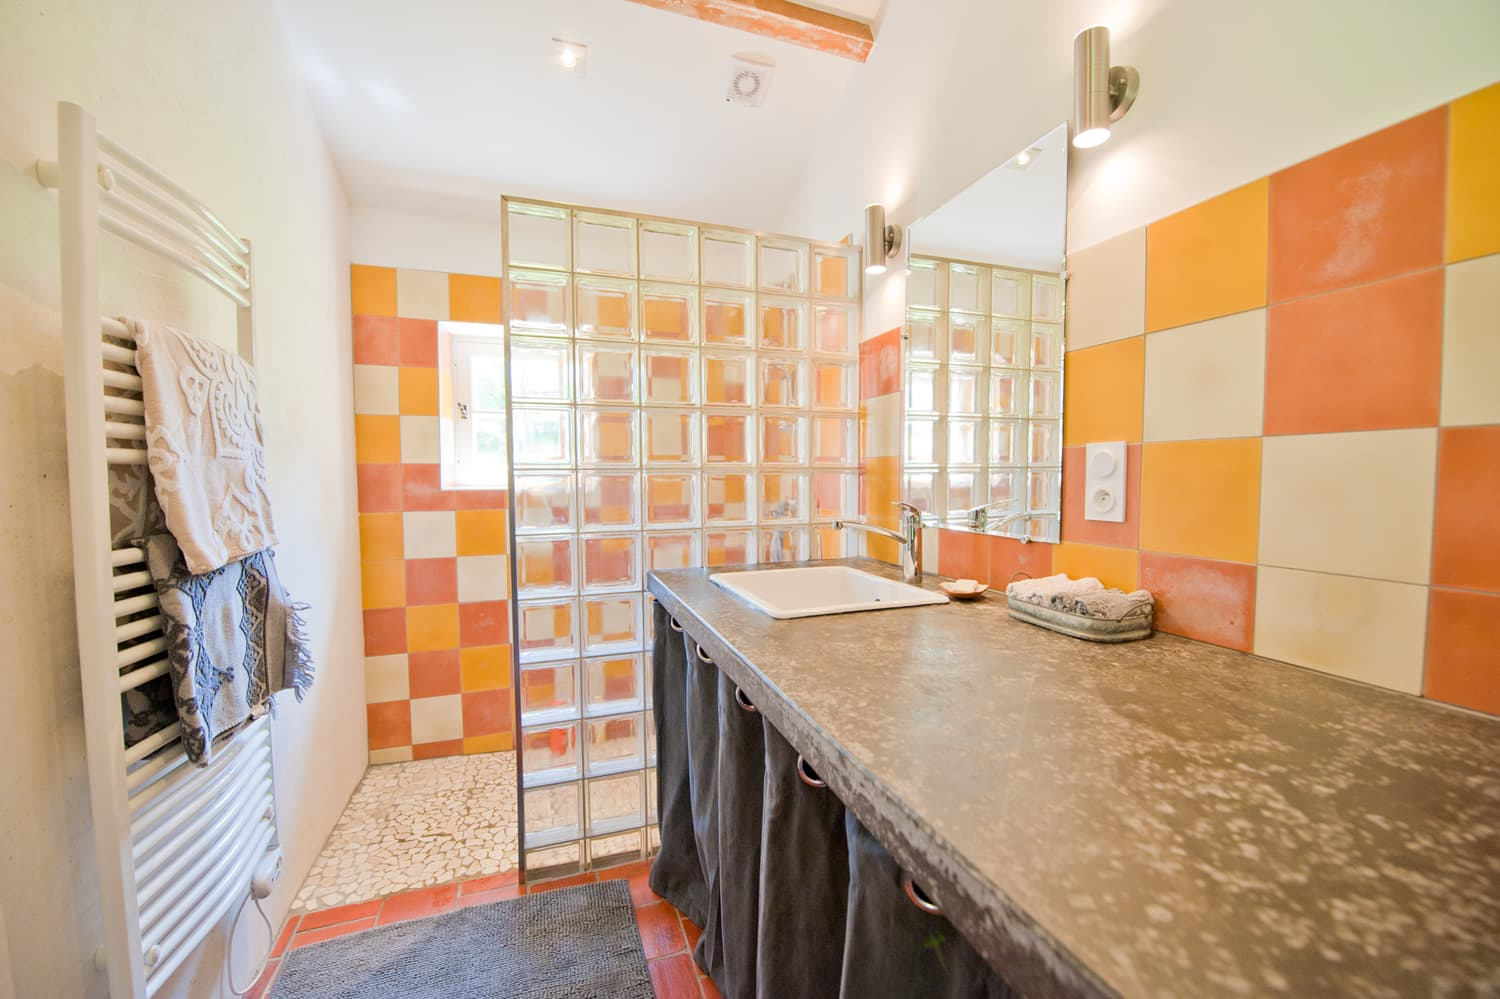 Bathroom in Lot-et-Garonne rental accommodation